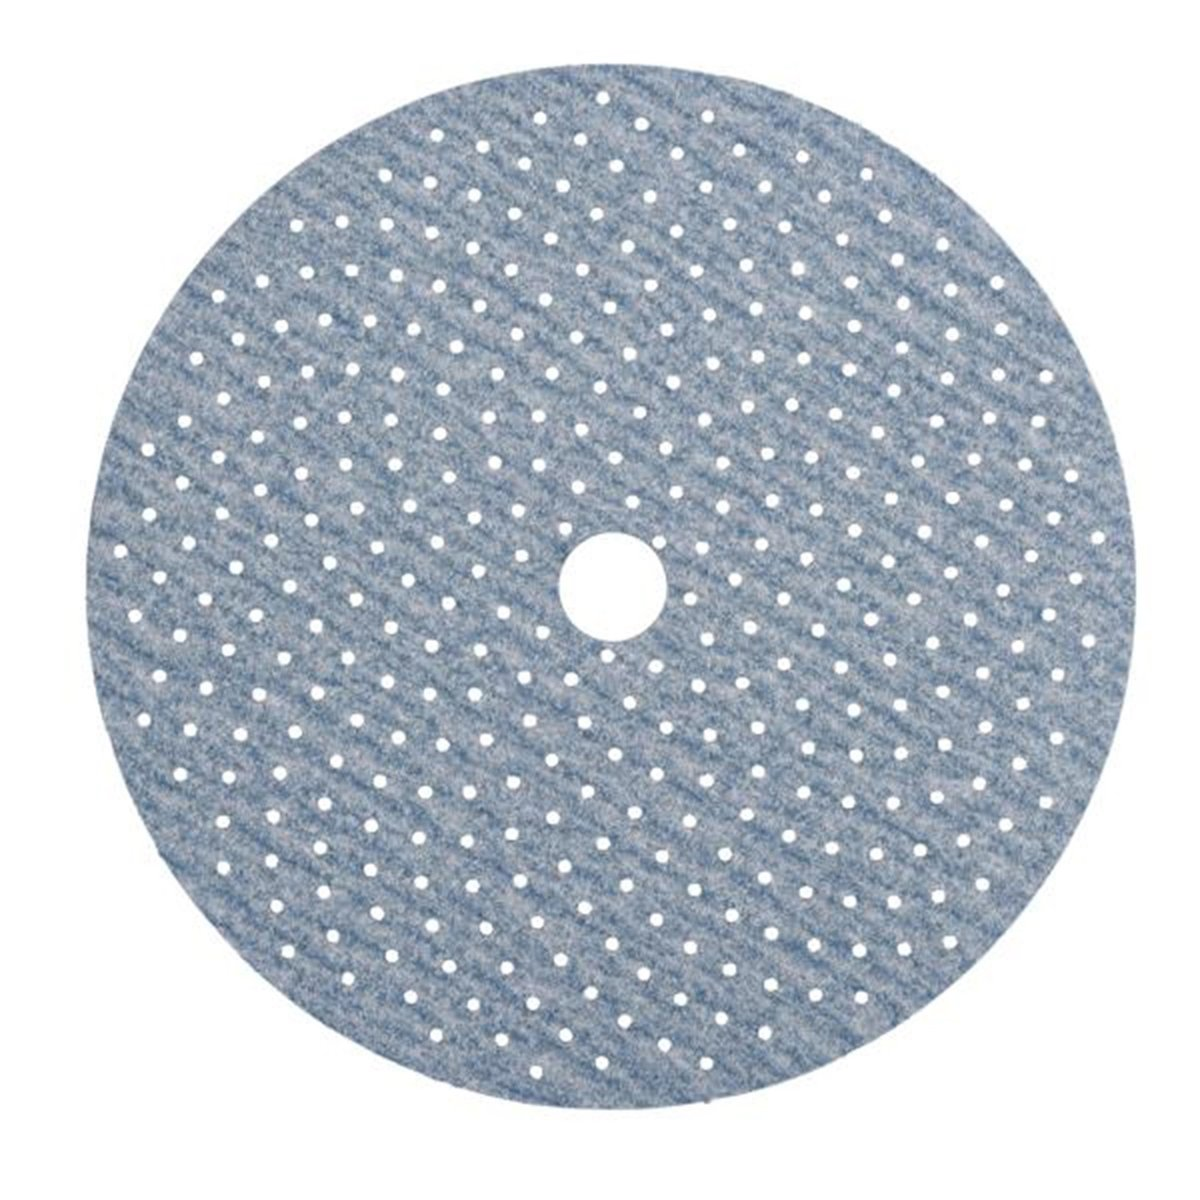 """View a Larger Image of 5"""" ProSand MULTI-AIR Hook and Loop Sanding Disc - 180 Grit - 50 Pack"""